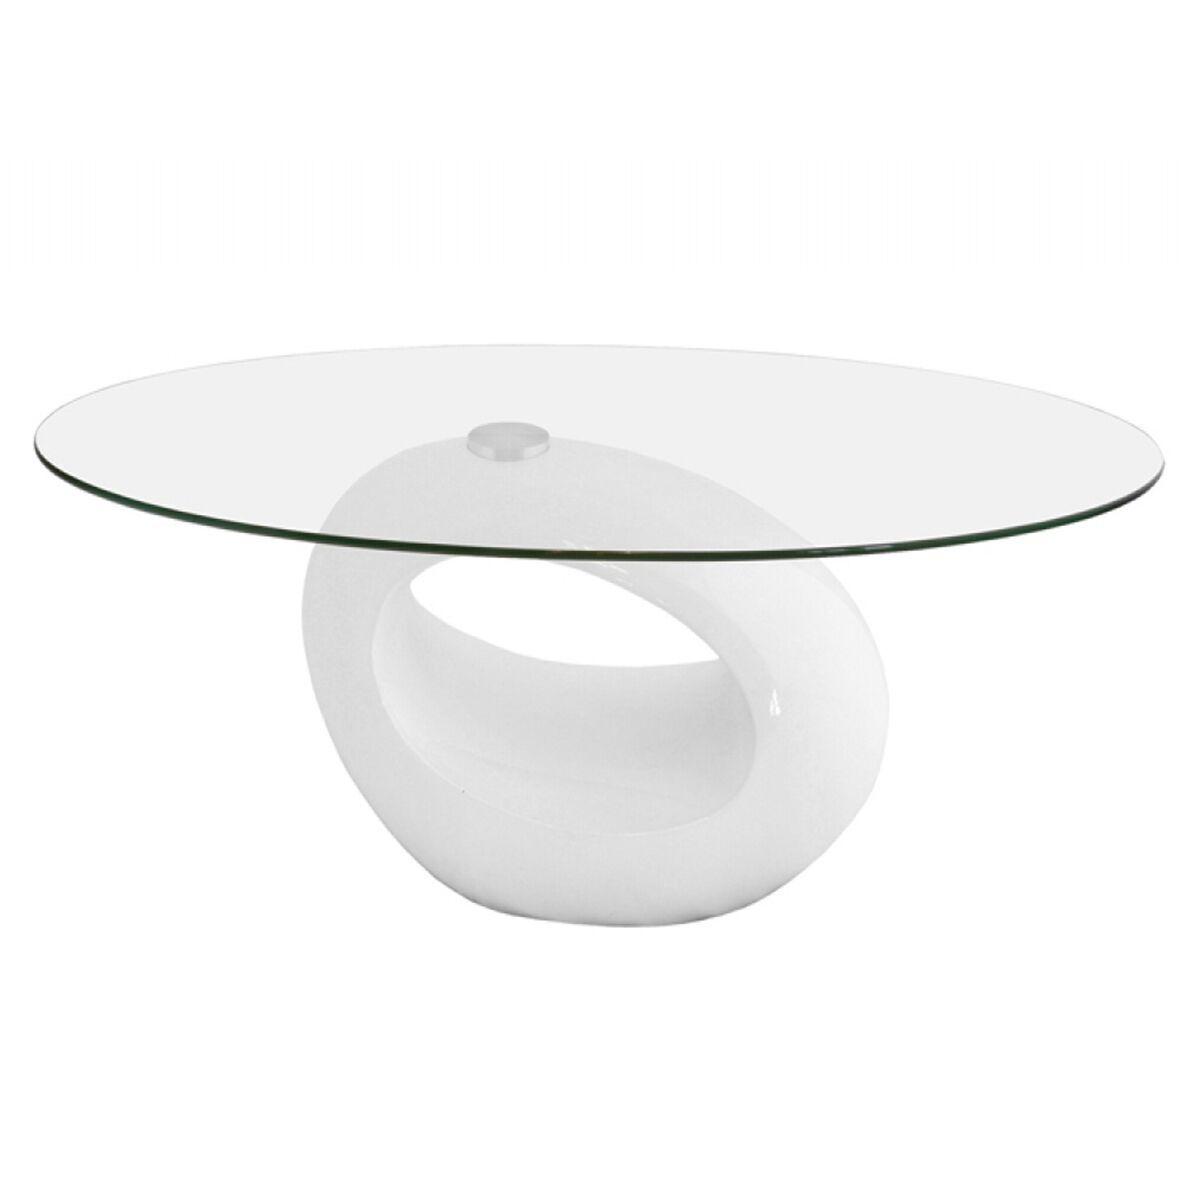 neblus curved white clear glass coffee table